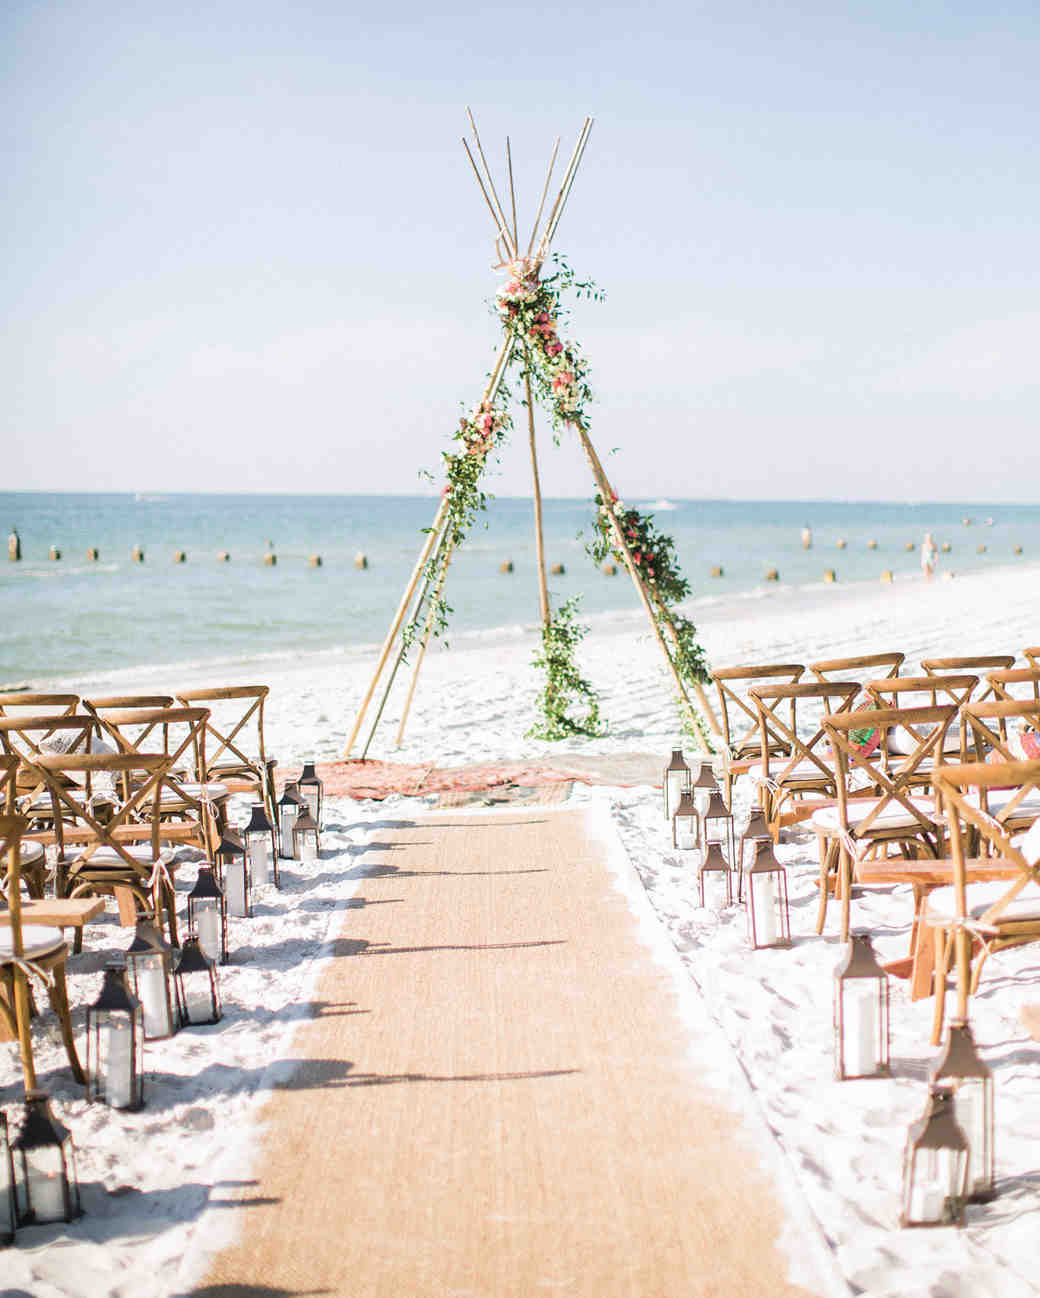 Ideas For A Small Wedding Ceremony: 22 Ideas For An Elevated Beach Wedding